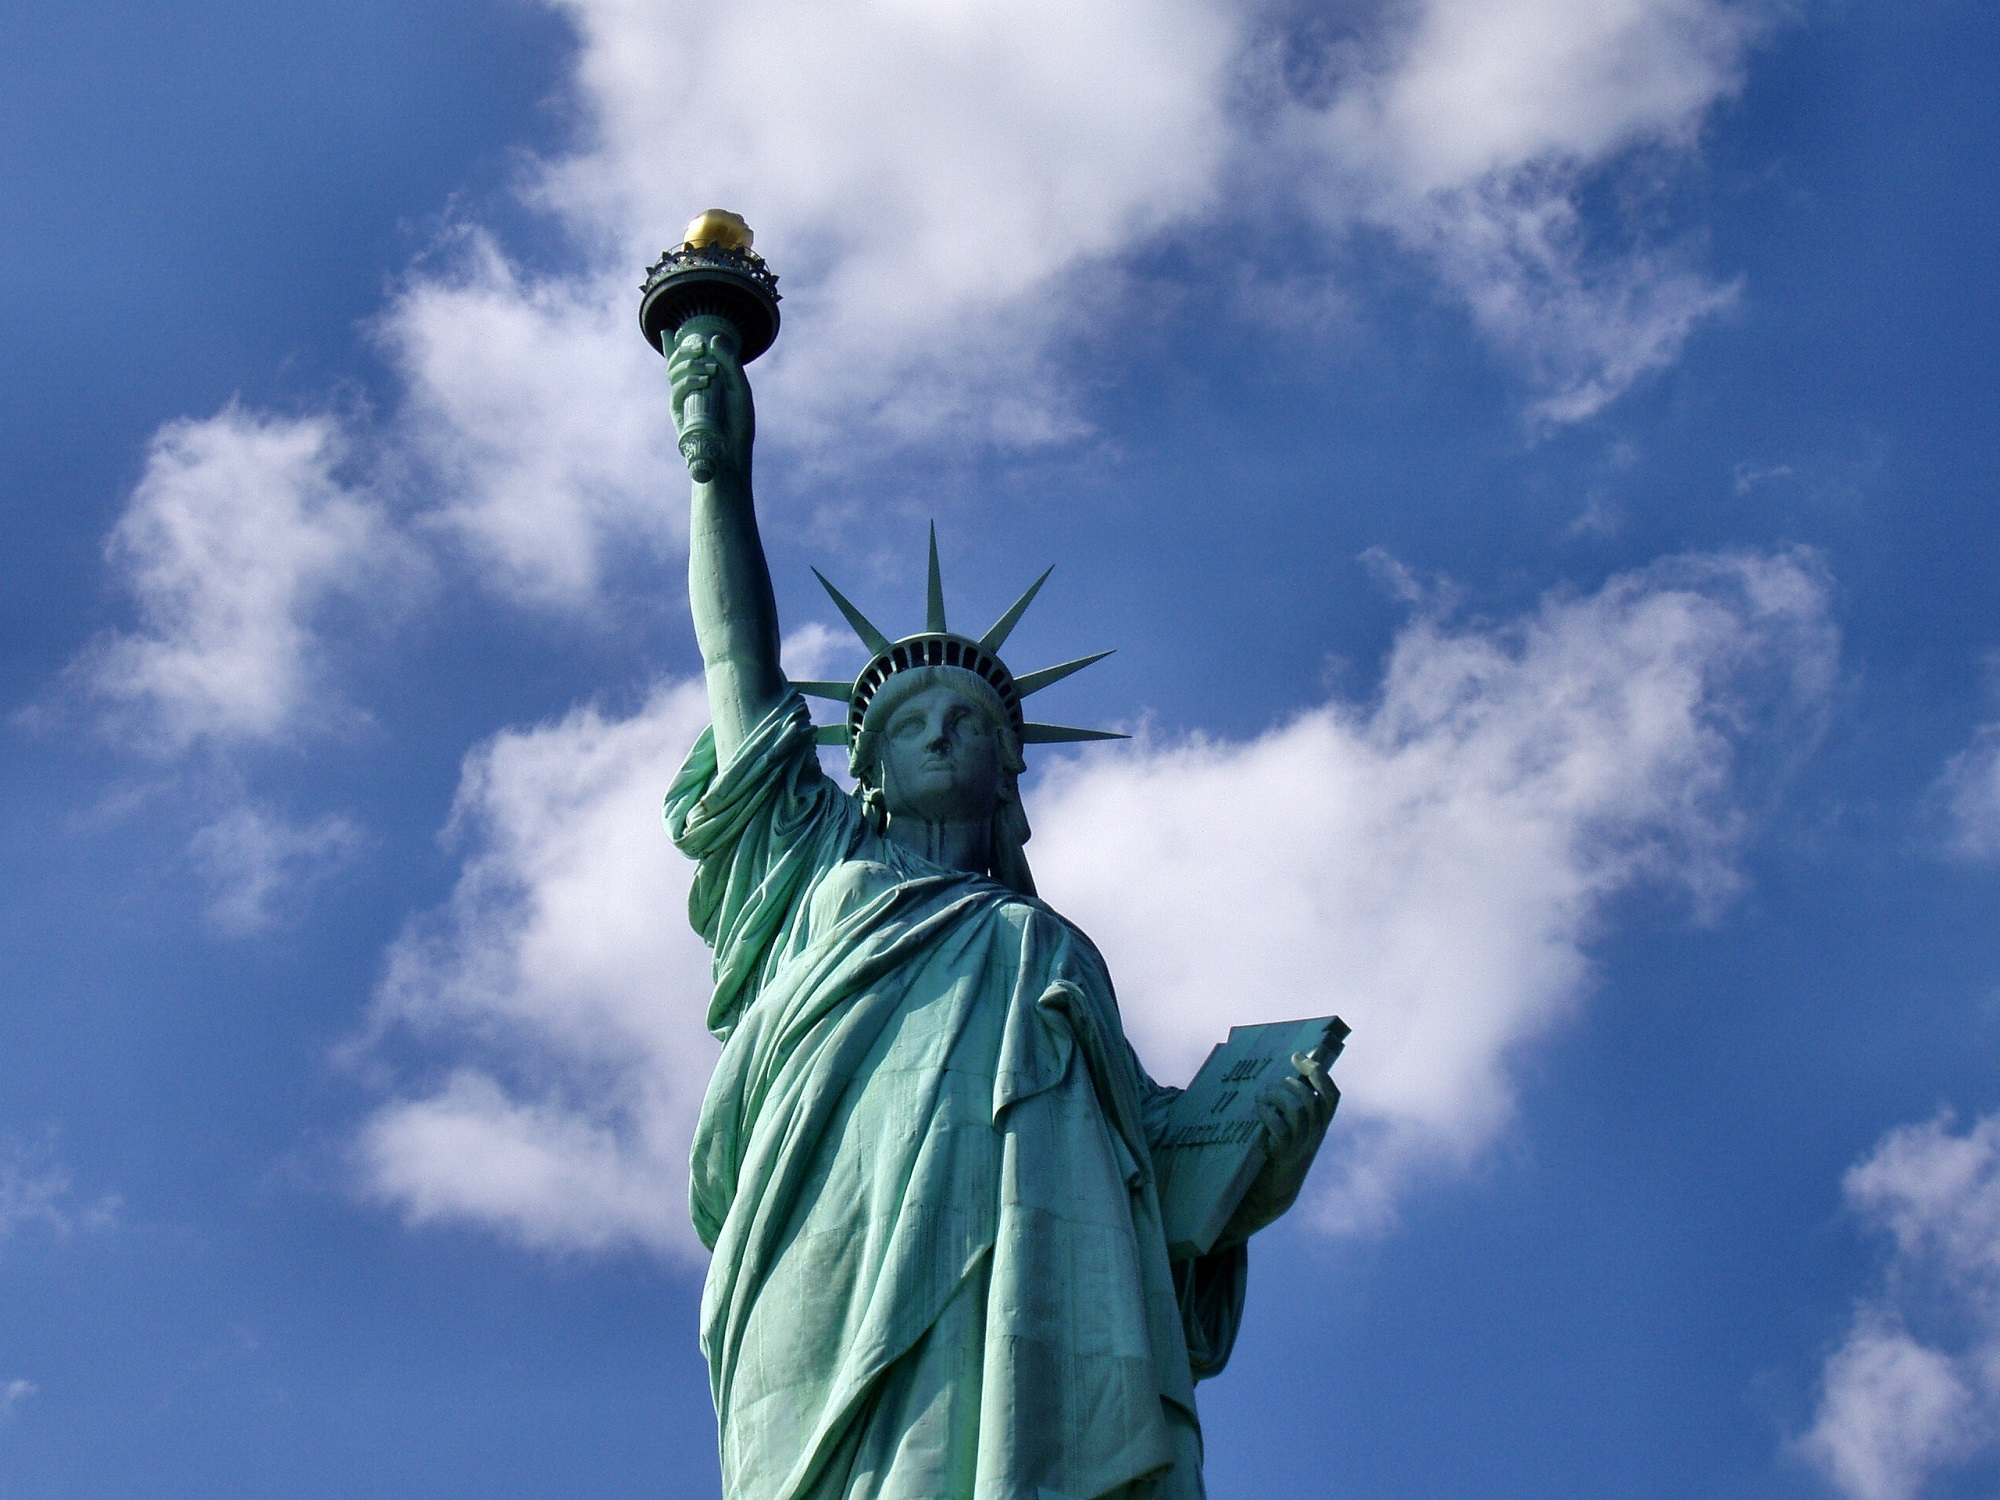 cloud-sky-new-york-manhattan-monument-statue-675349-pxhere.com.jpg